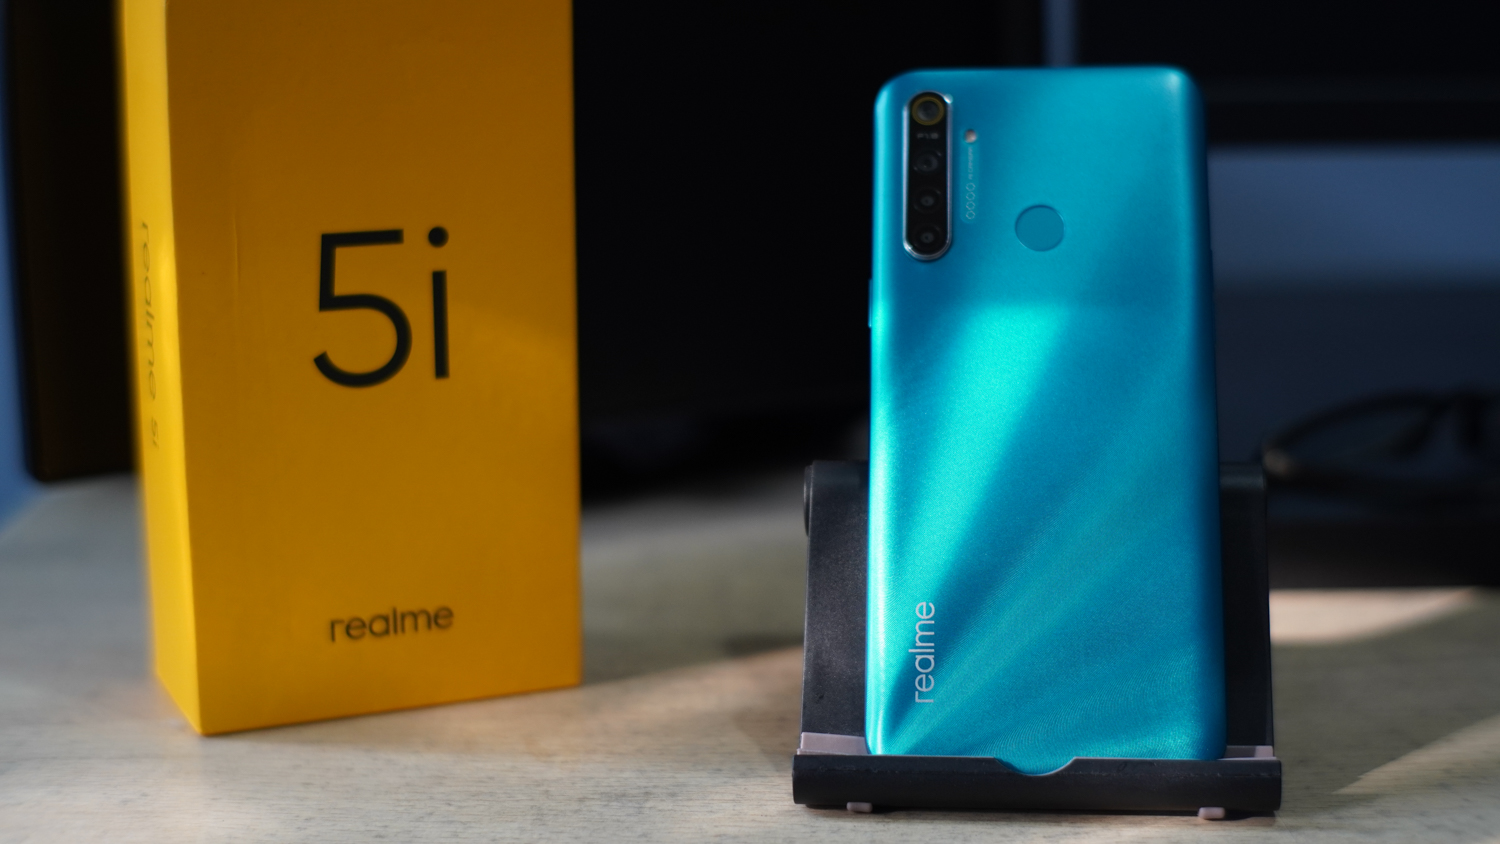 realme-5i-review-gaming-battery-life-camera-philippines (20)